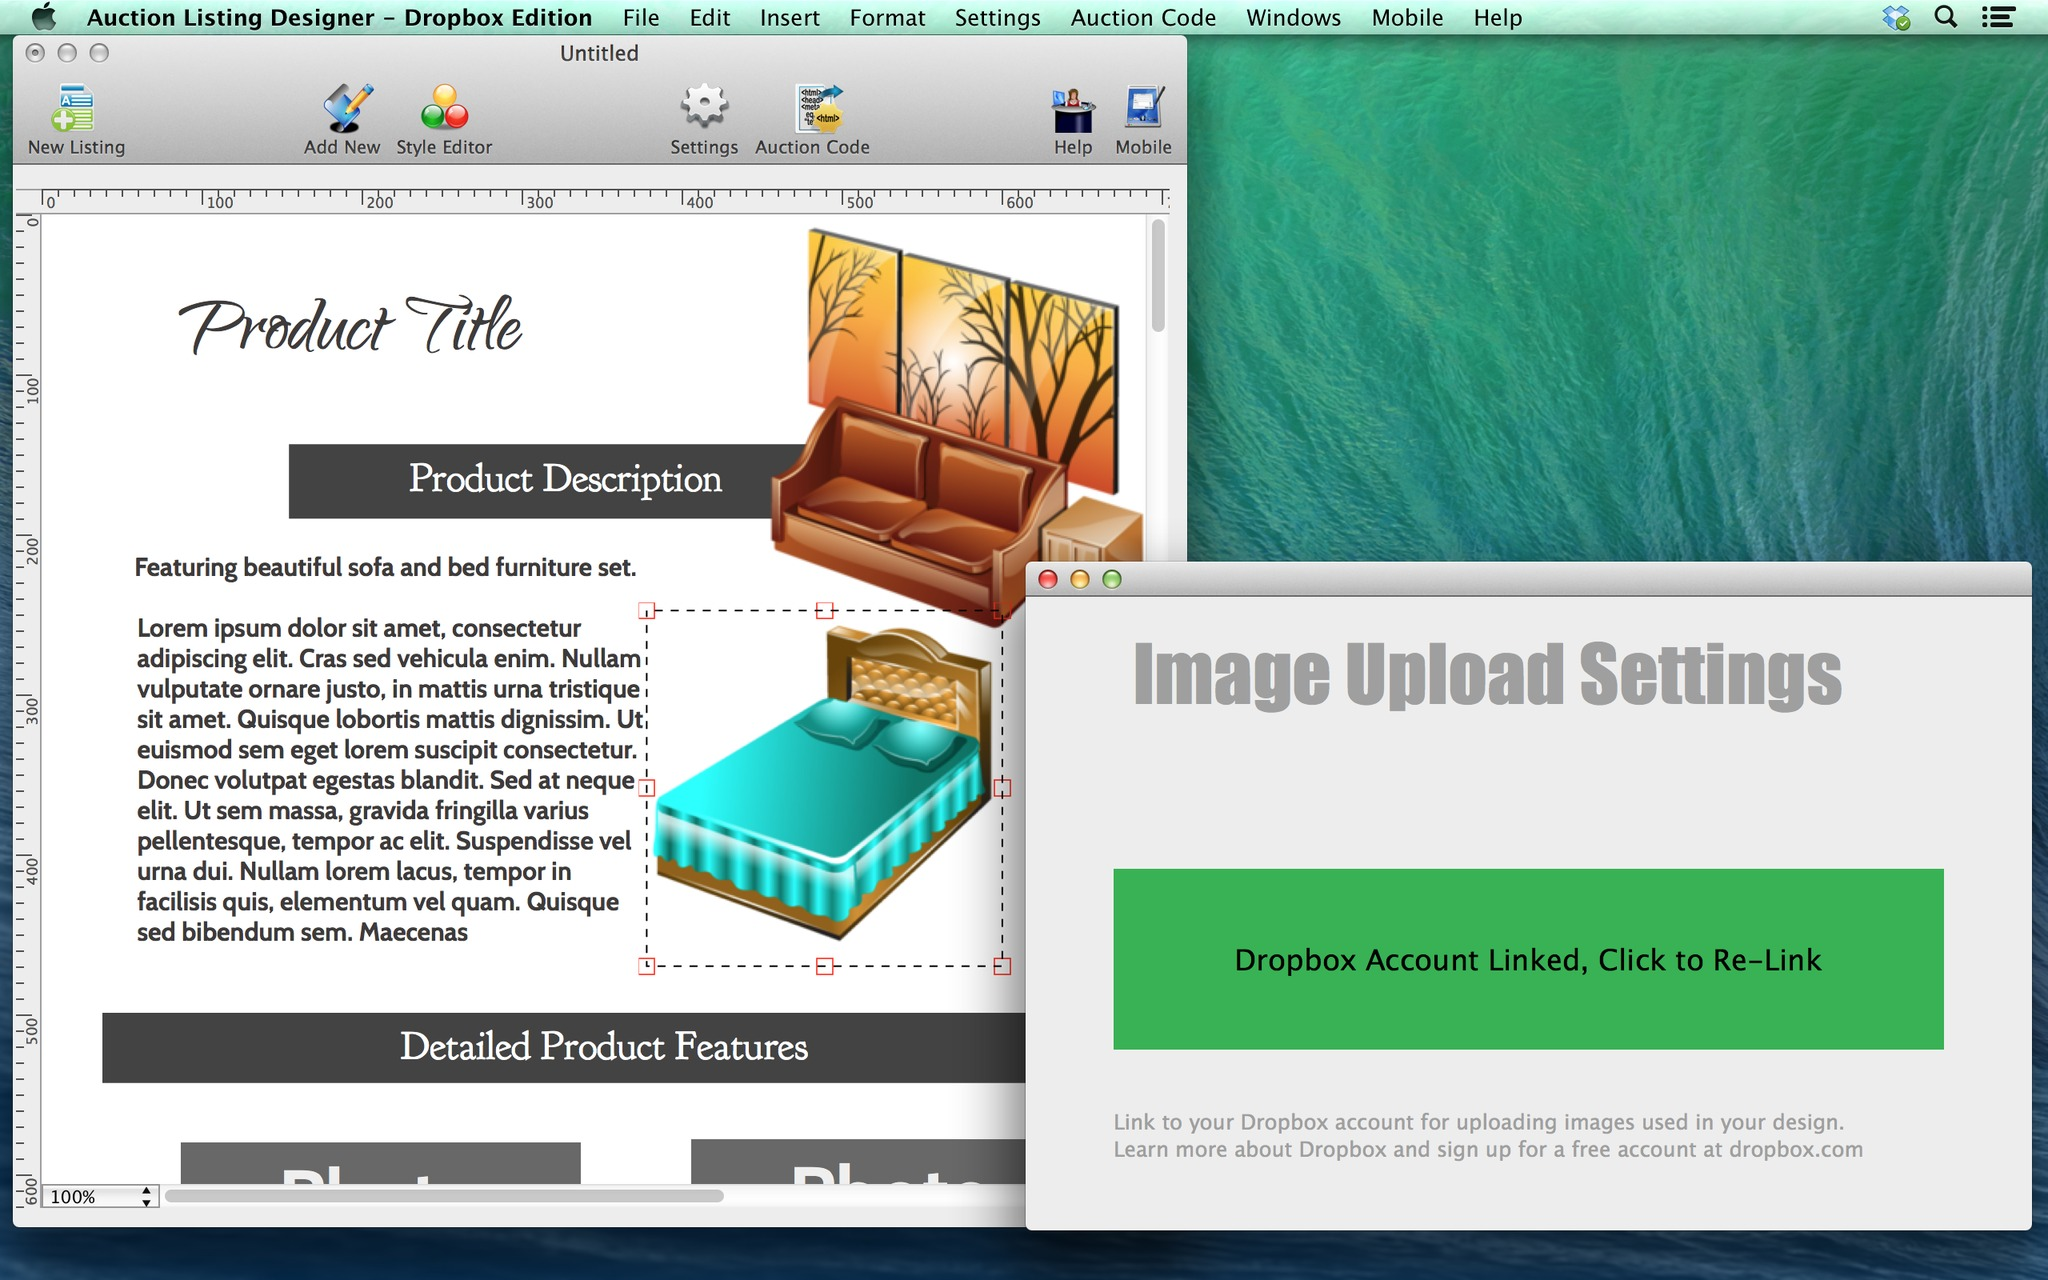 Screenshot 1 for Auction Listing Designer - Dropbox Edition